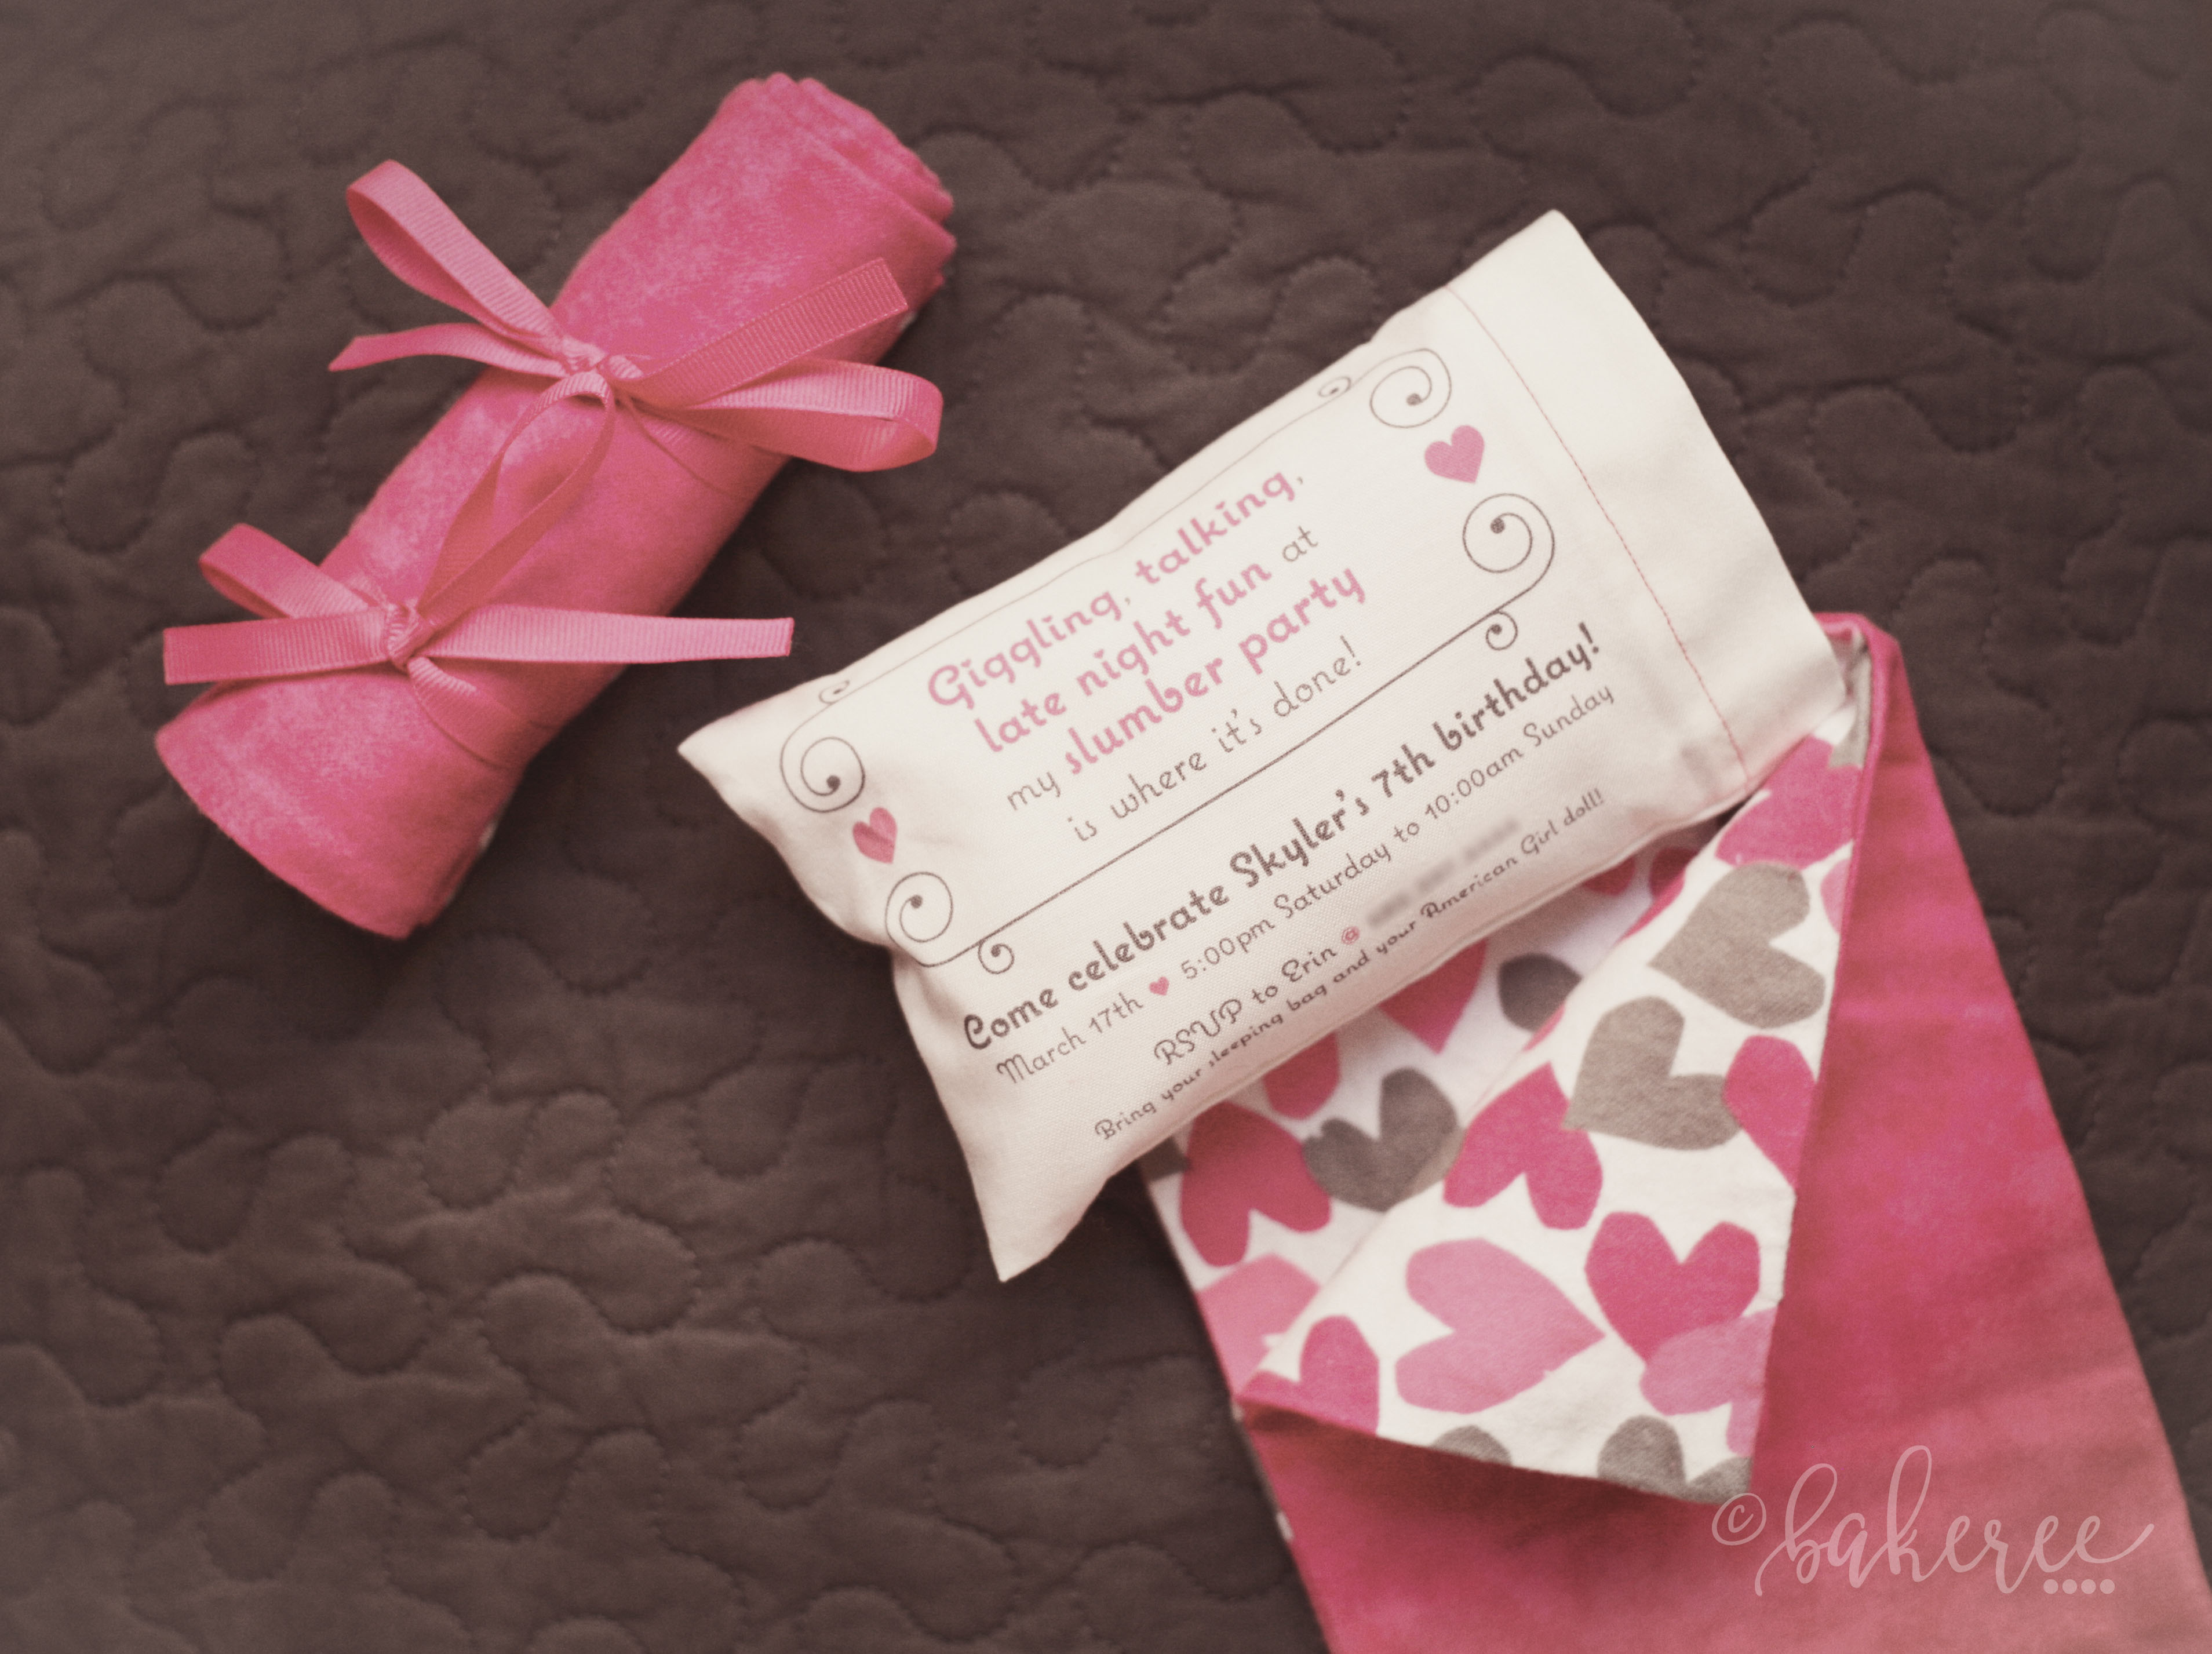 Sleeping Blanket and Pillow Wedding Invitation